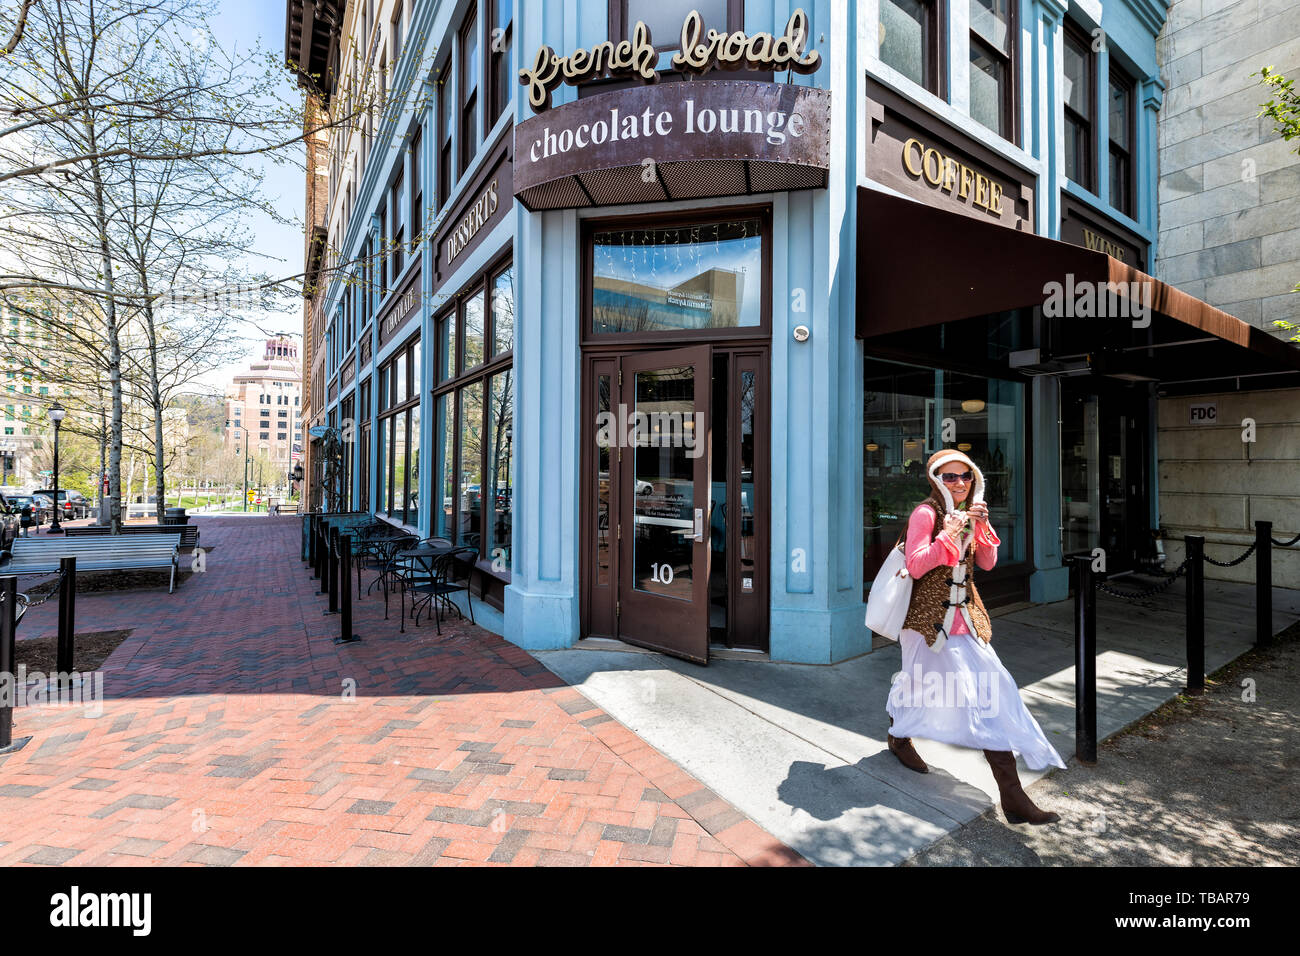 Asheville, USA - April 19, 2018: Downtown old town street in North Carolina NC famous town with sign entrance to Chocolate Lounge and woman walking - Stock Image